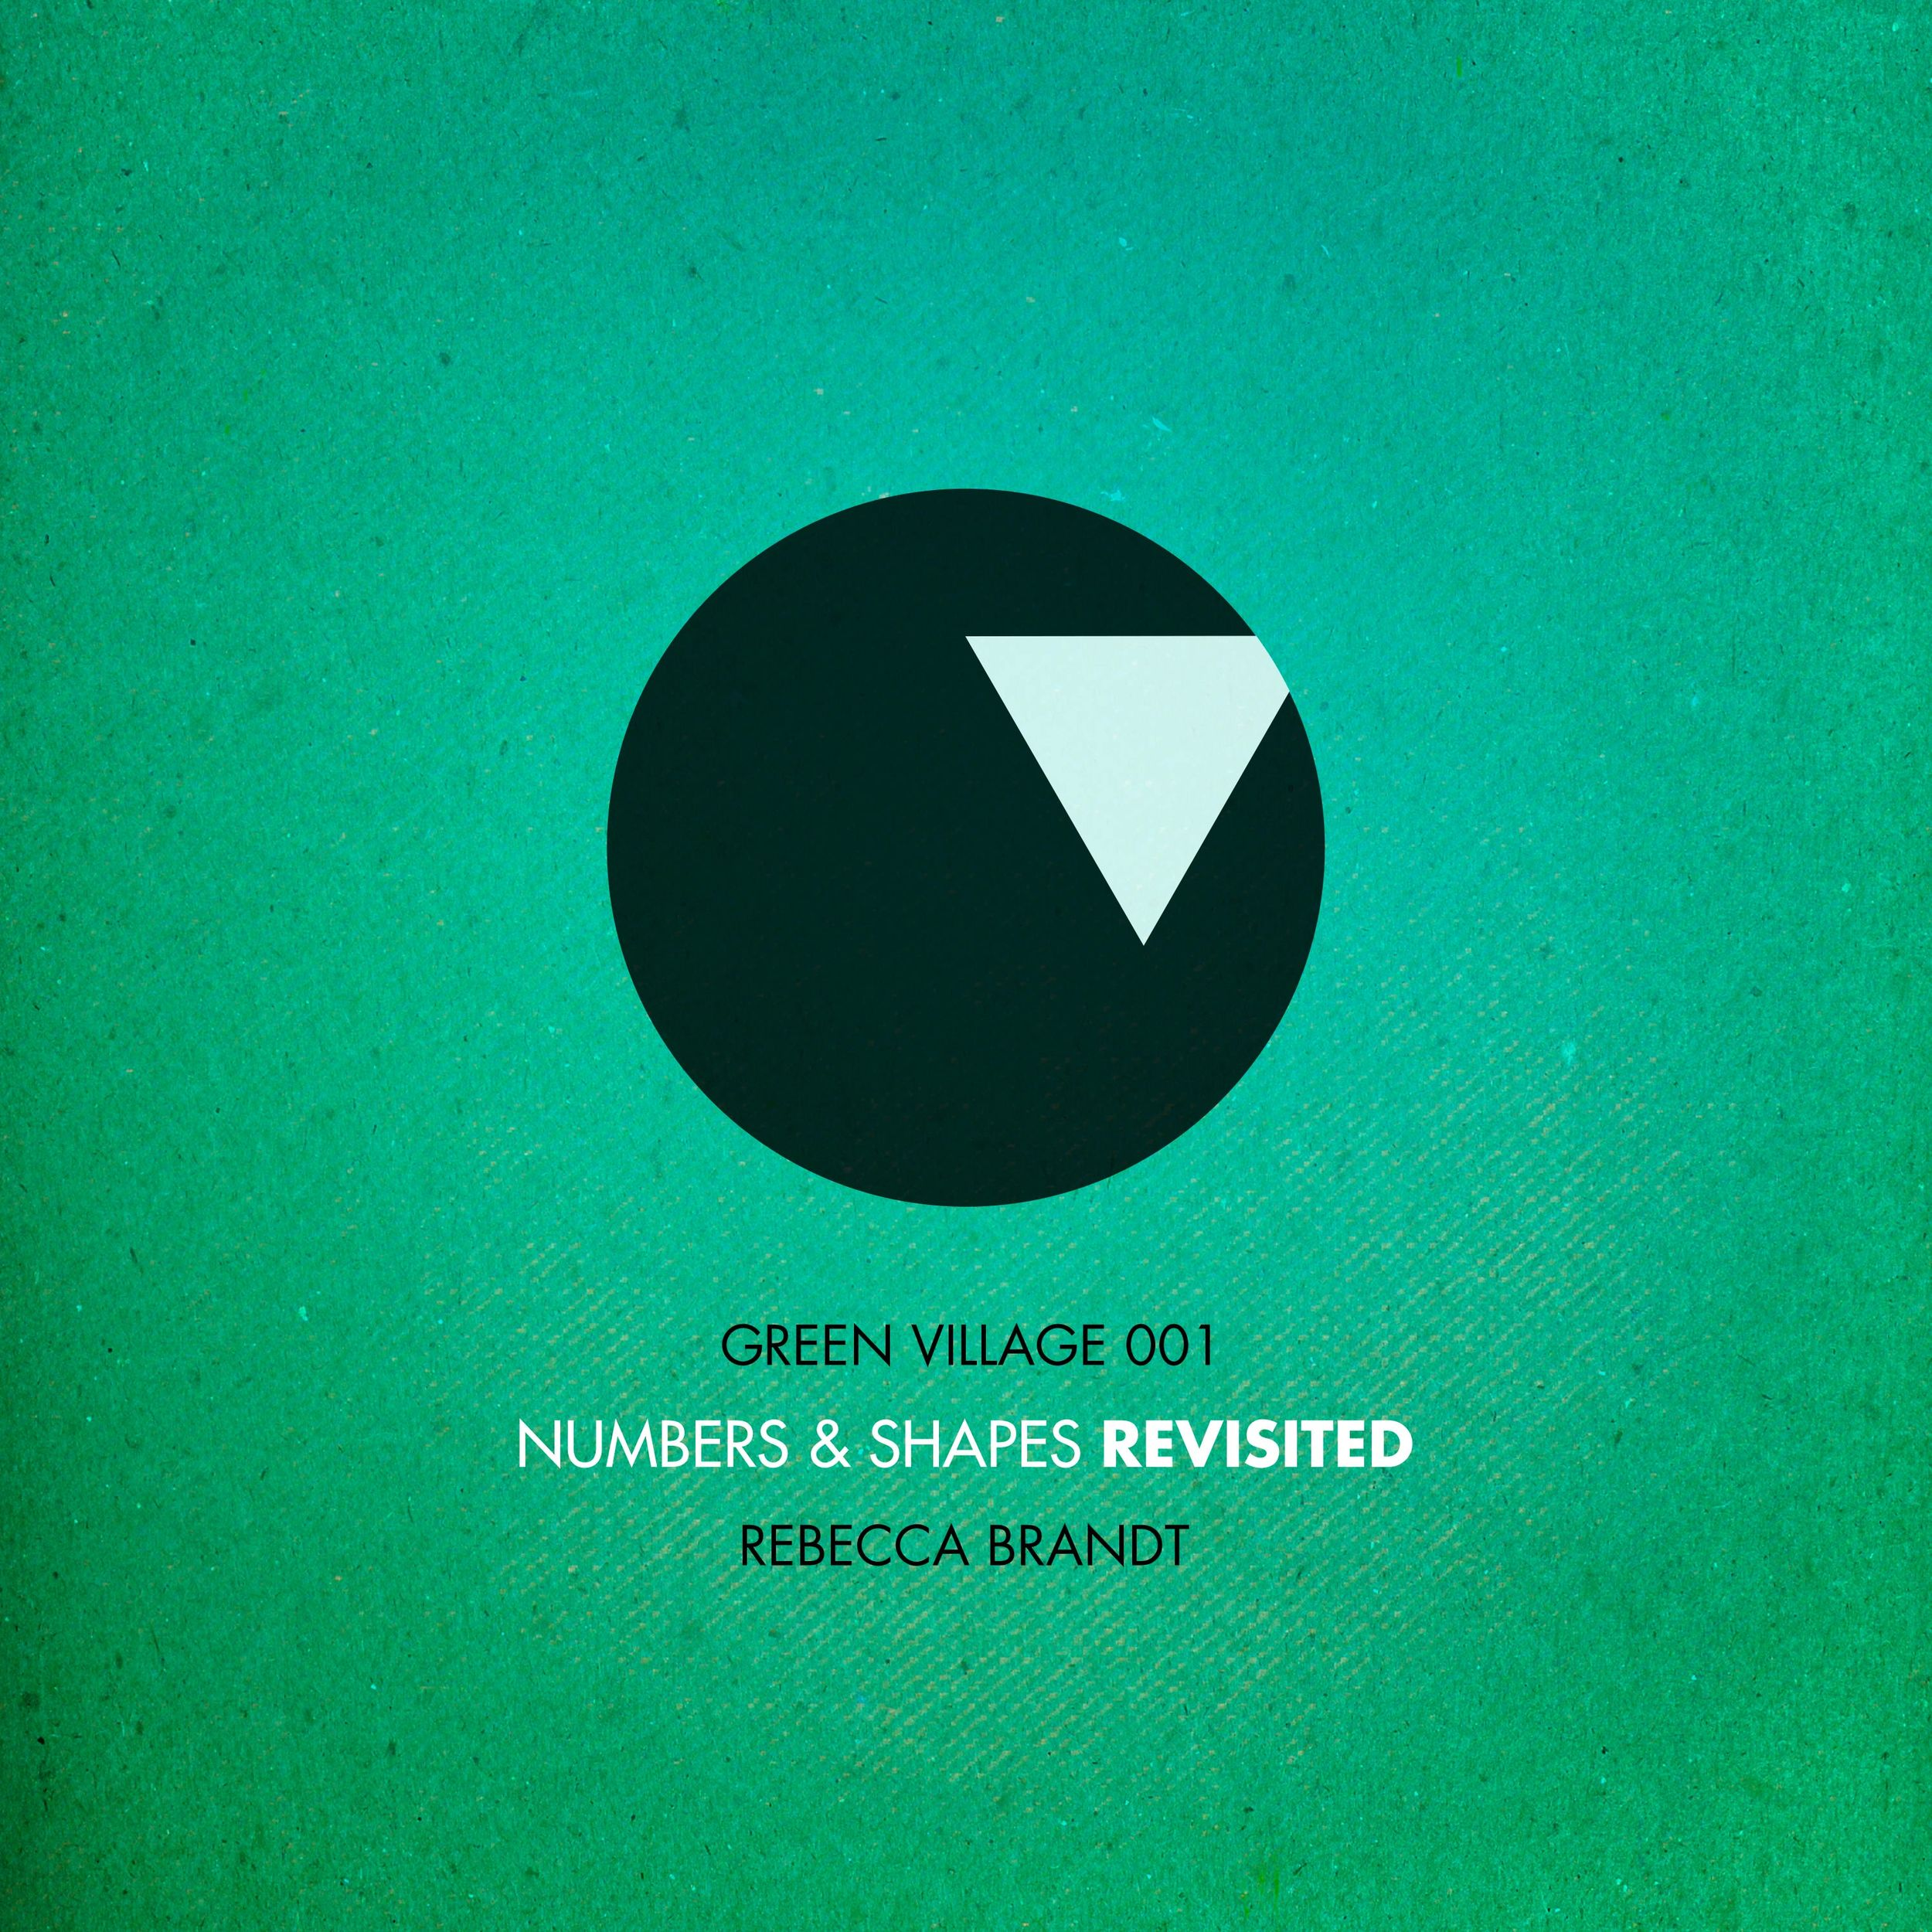 Numbers & Shapes: Revisited is a dance-floor driven contemporary classical remix album which features 14 remixes from the likes of Starkey, Policy, Dakini9, Nicuri, Doctor Jeep and more.